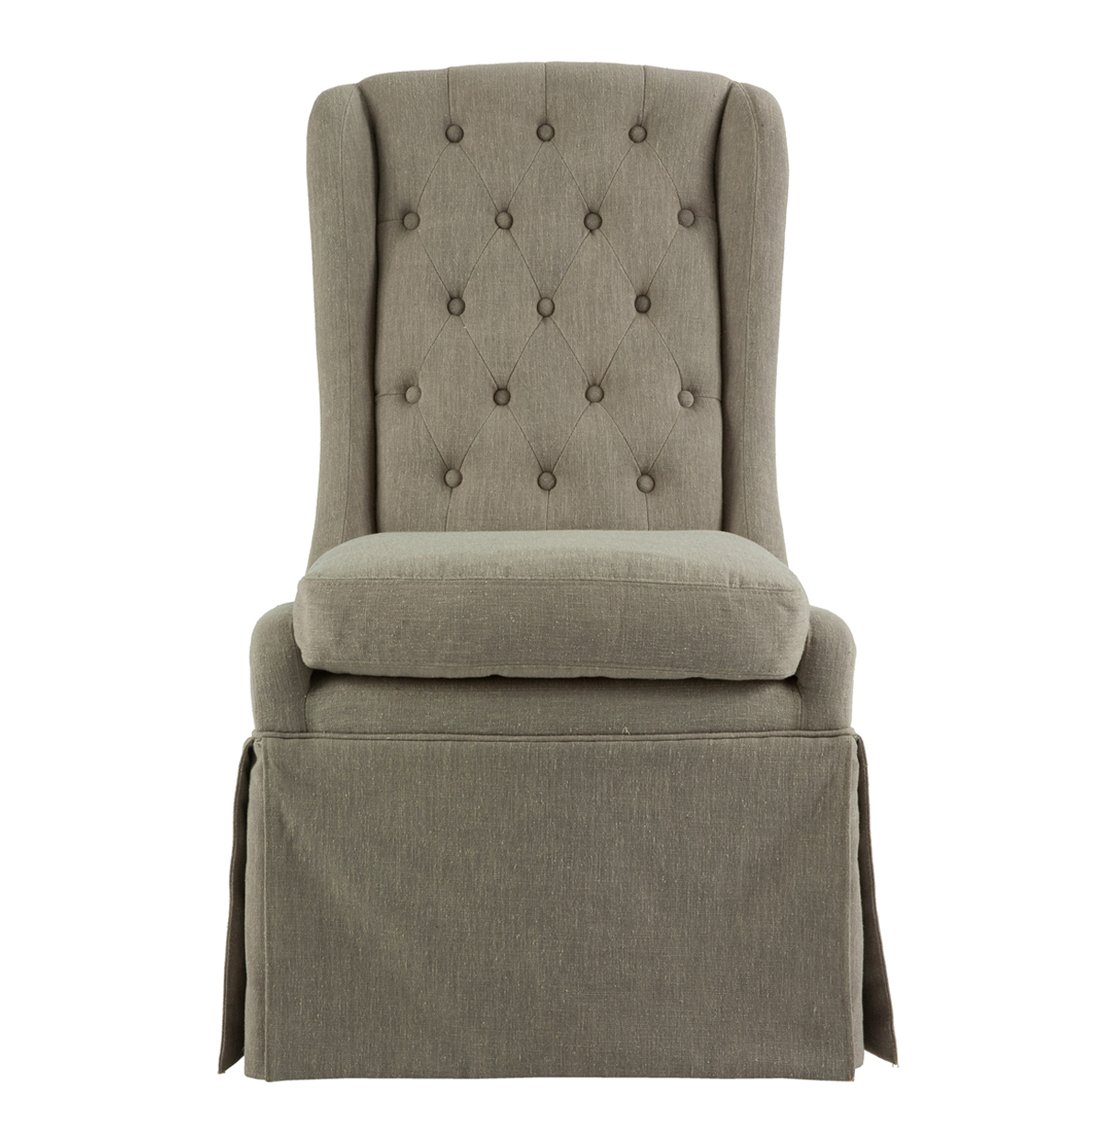 Issac French Gray Linen Skirted Tufted Dining Occasional Chair